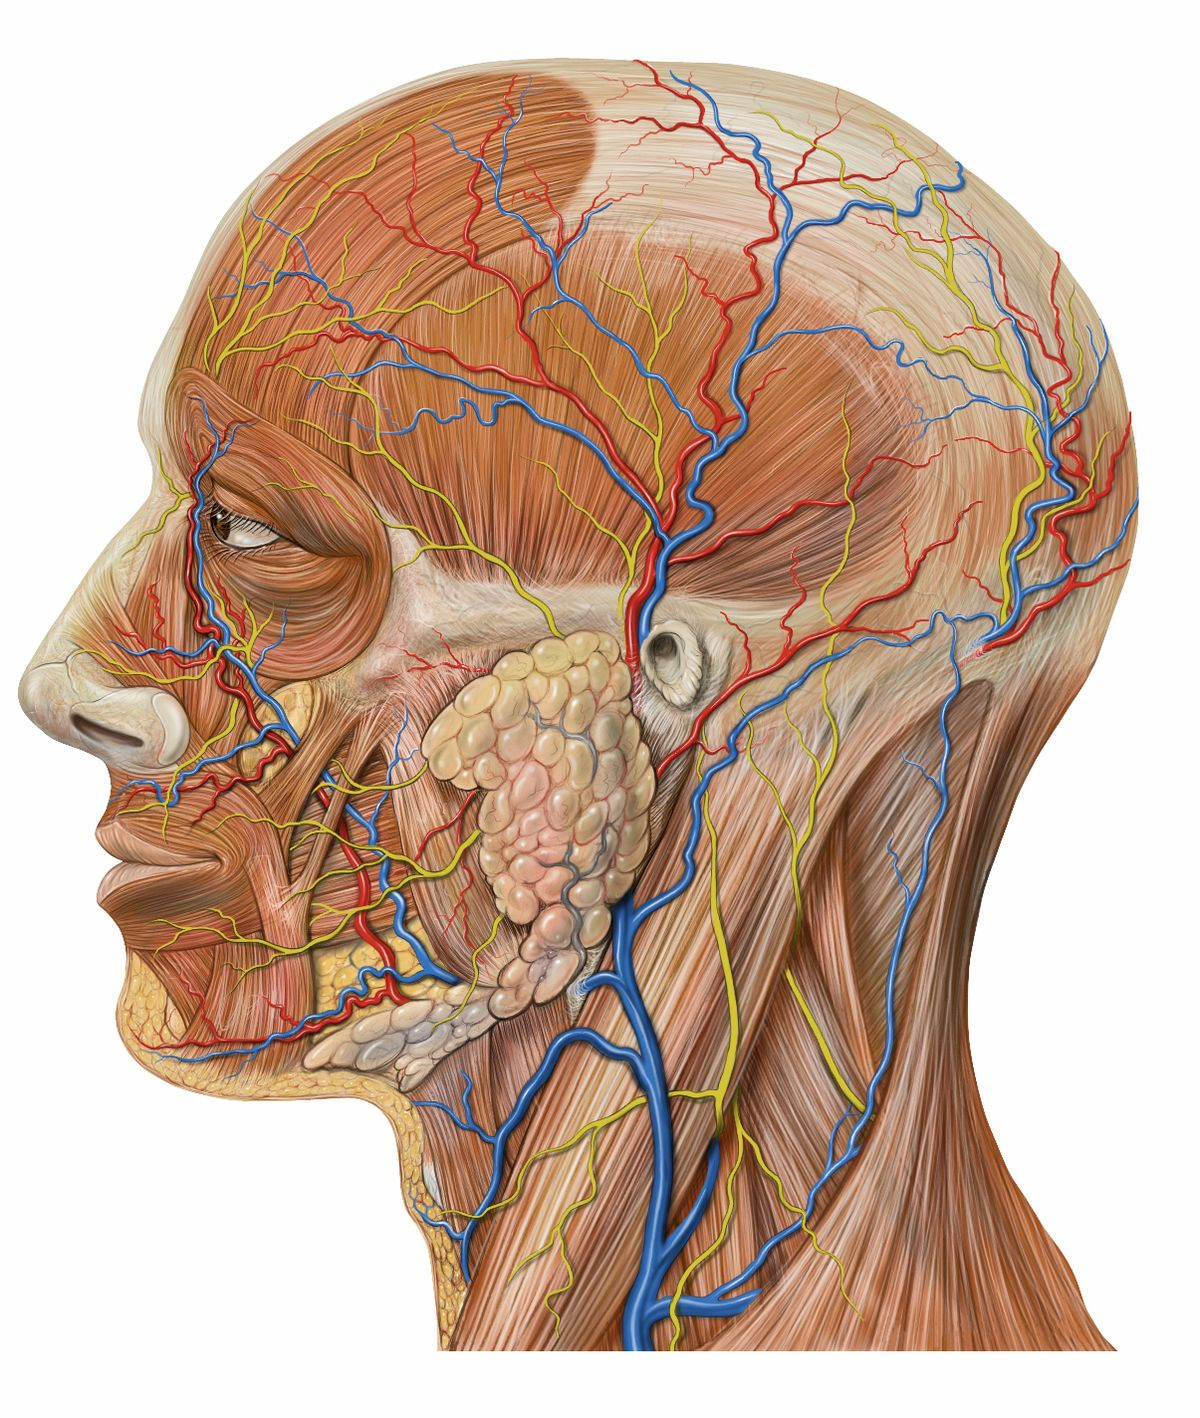 Anatomy - Simple English Wikipedia, the free encyclopedia